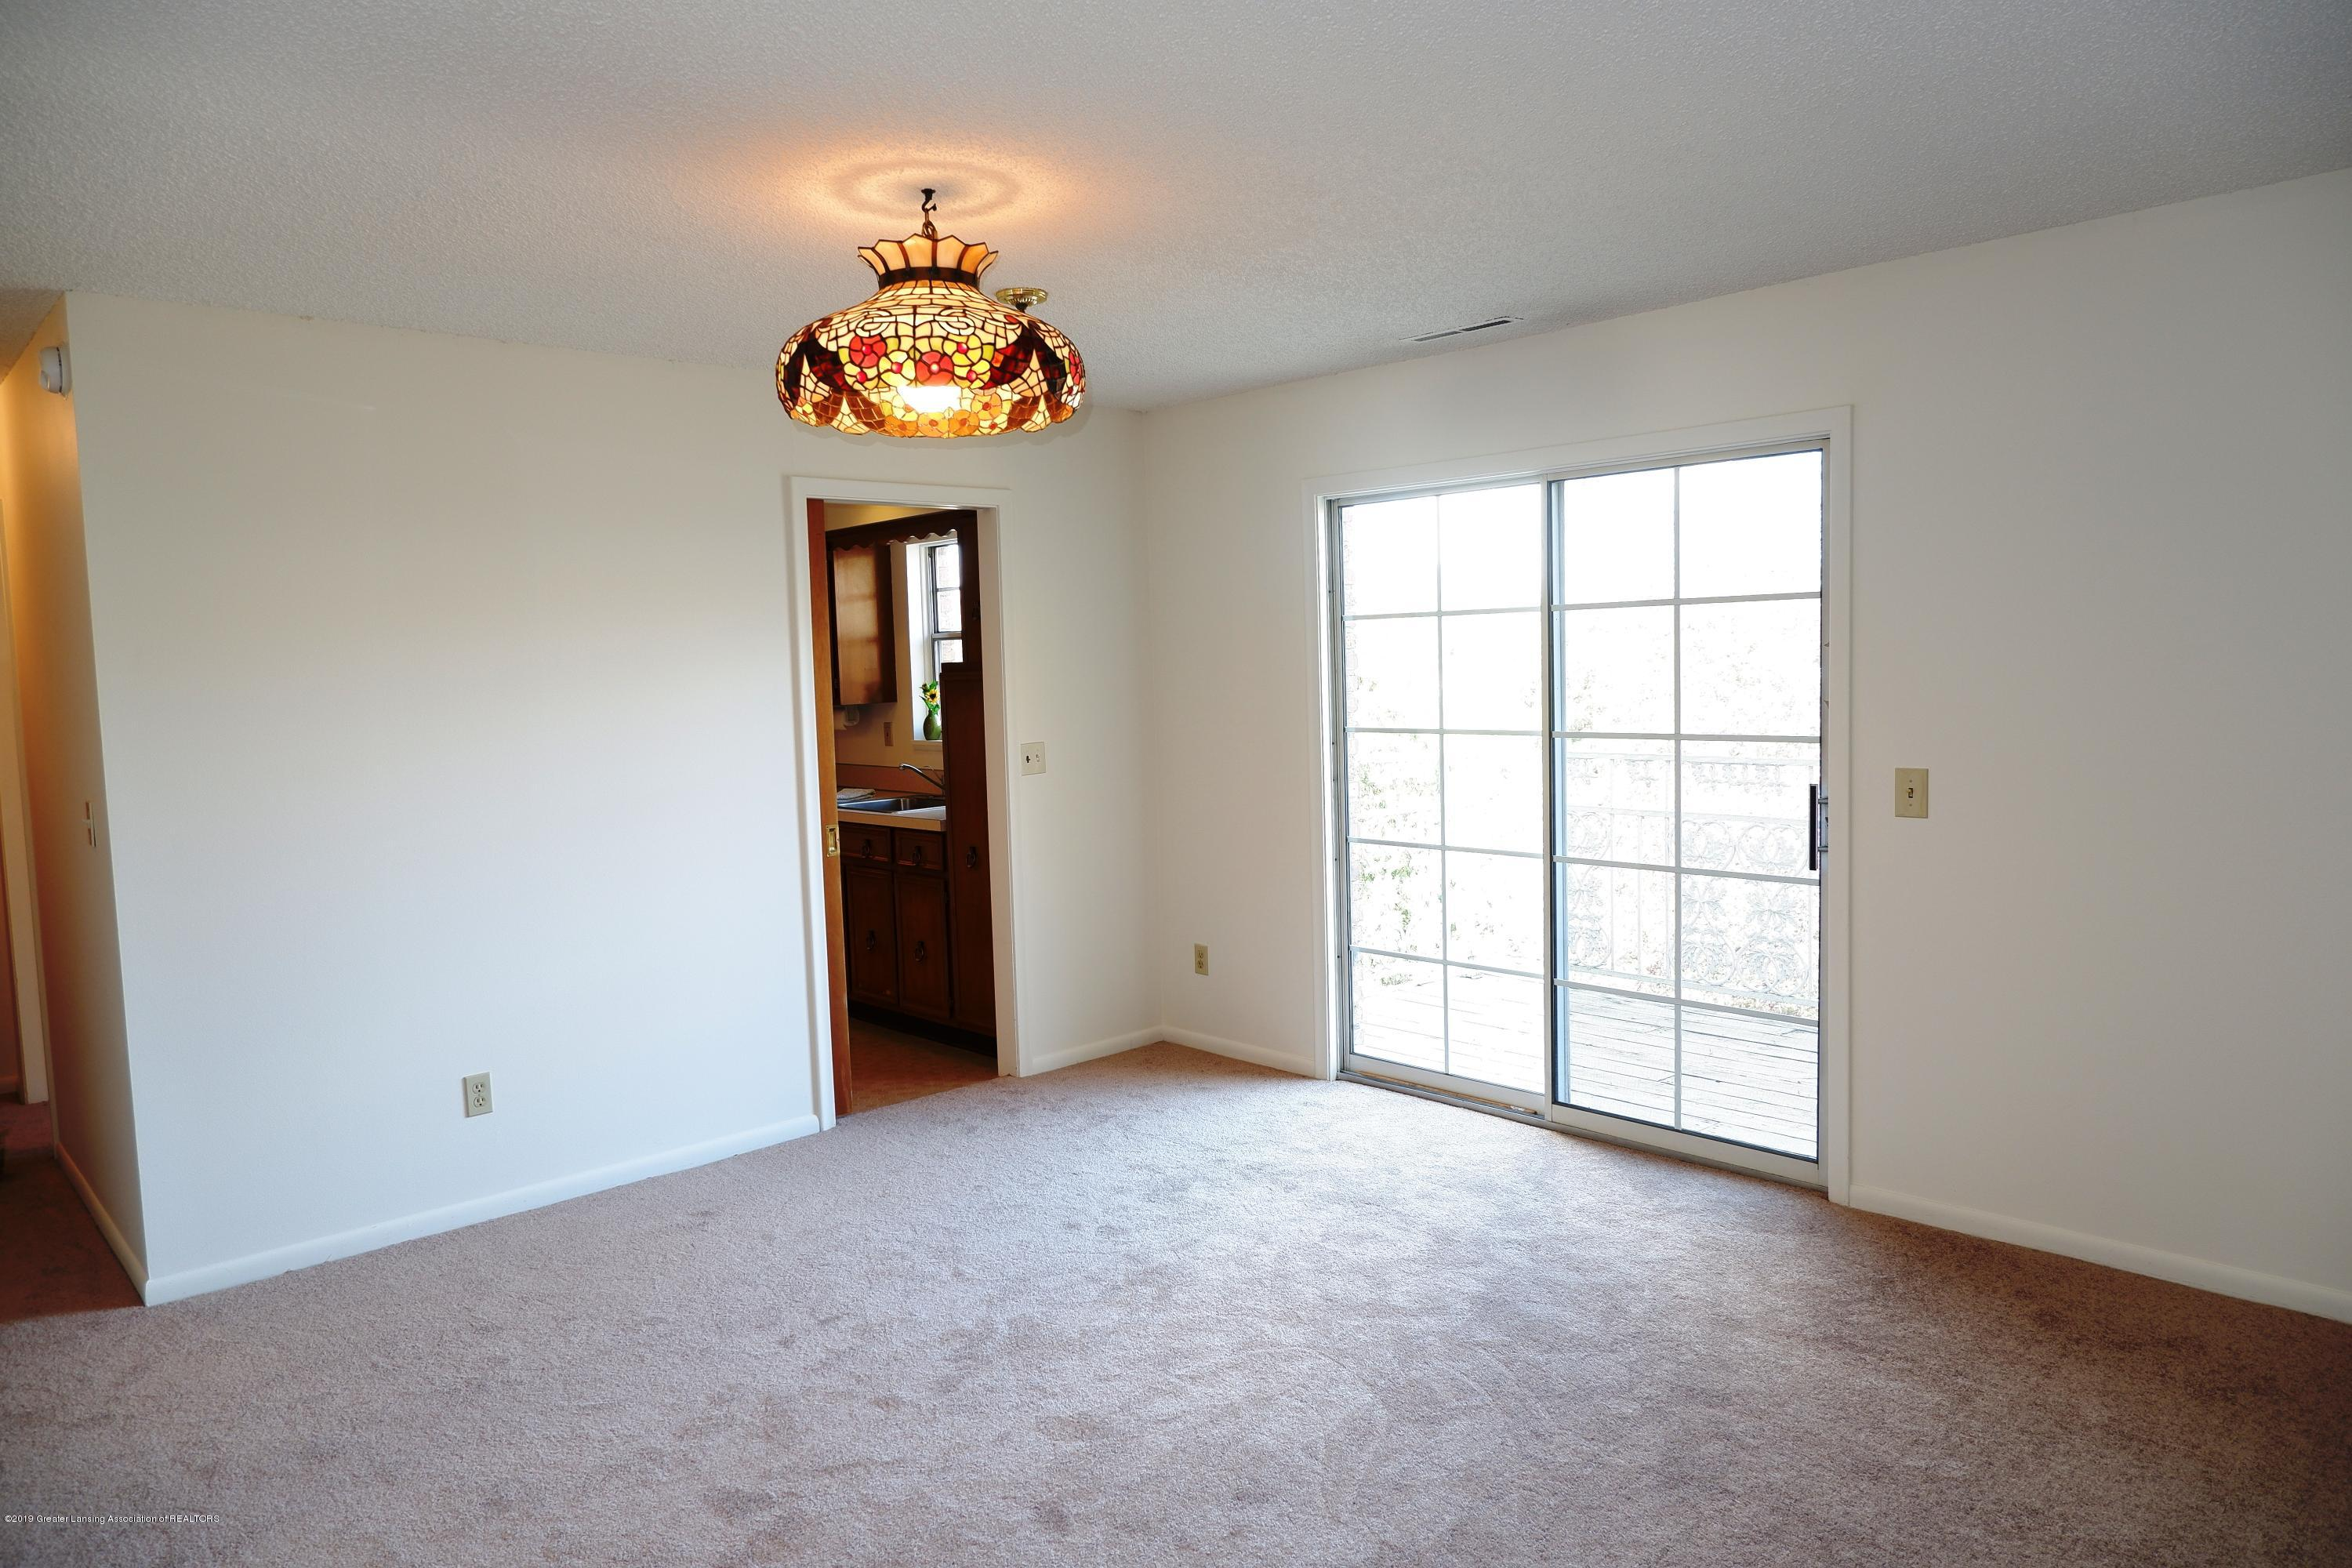 3333 Moores River Dr Apt 508 - Slider to balcony - 10